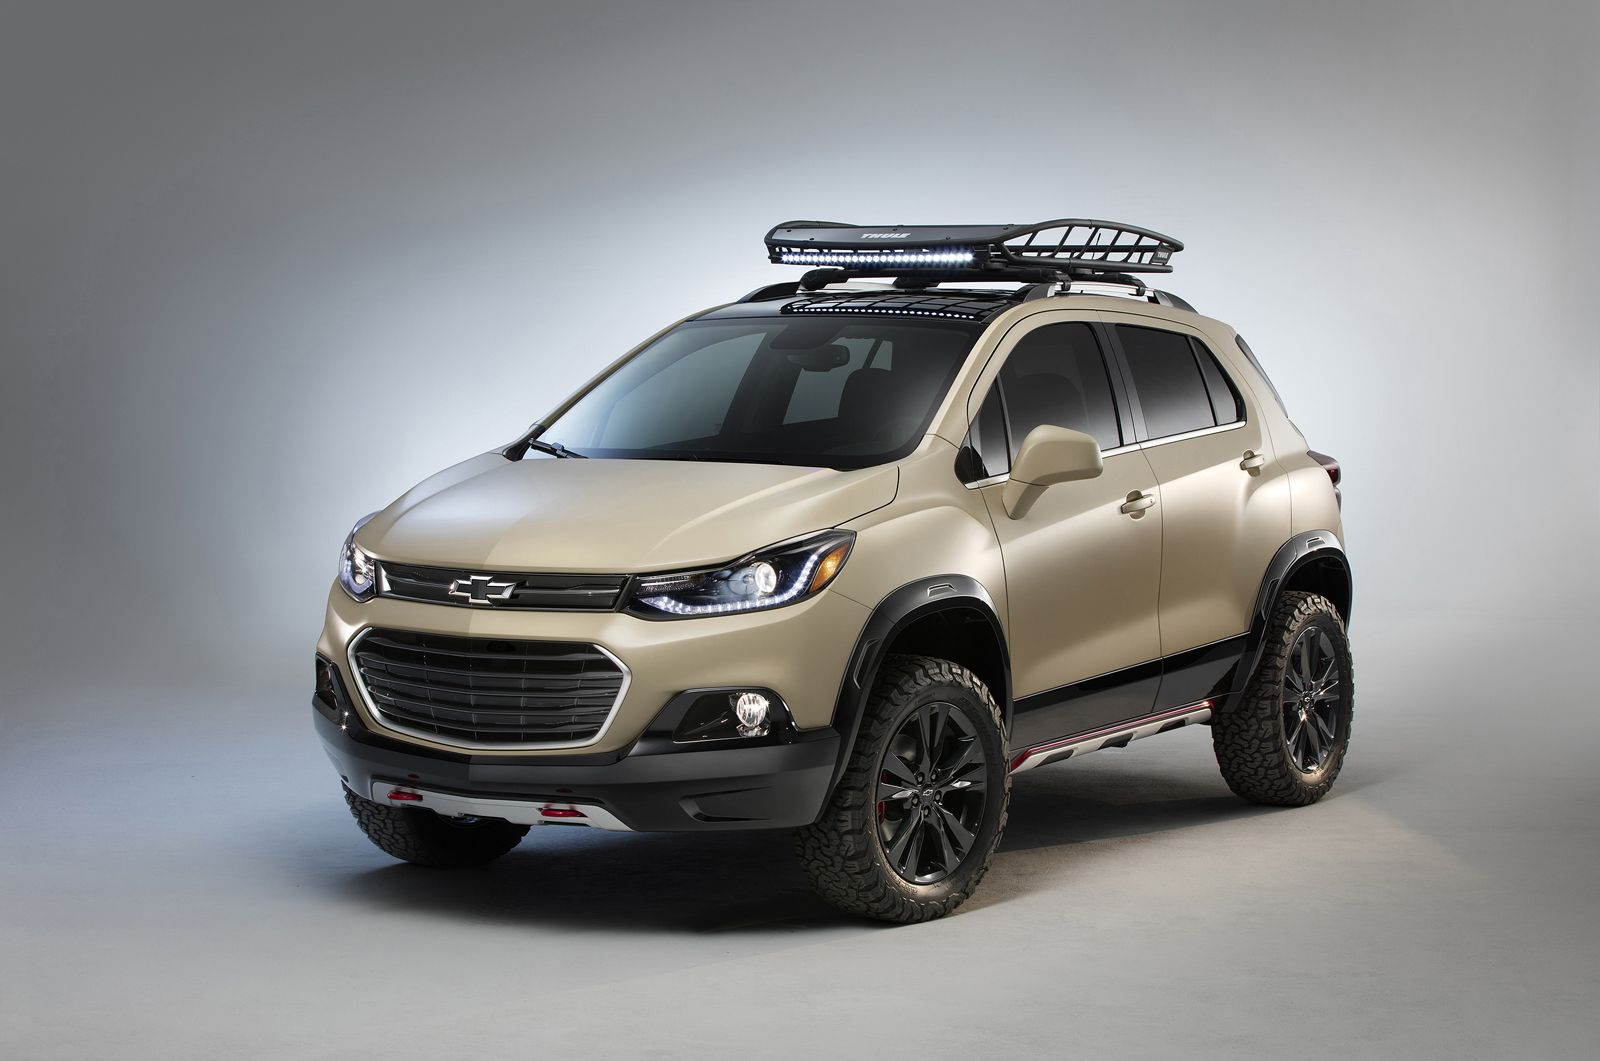 Chevy Show Trucks Tackle The Sand To Get To Sema Carscoops Chevrolet Trax Chevrolet Trax